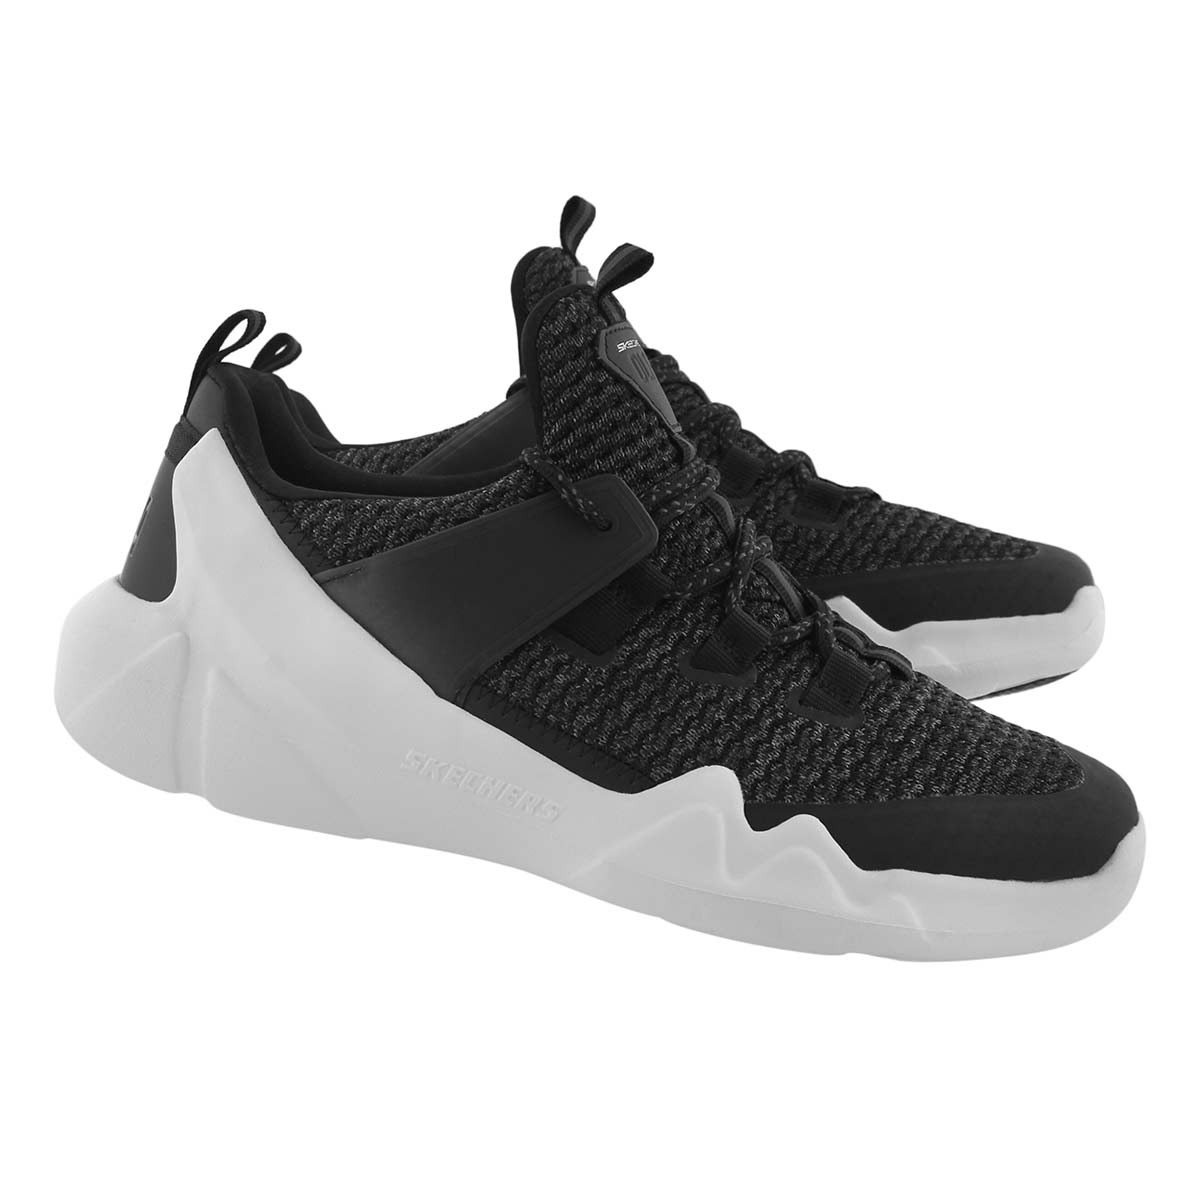 Mns DLT-A blk lace up running shoe